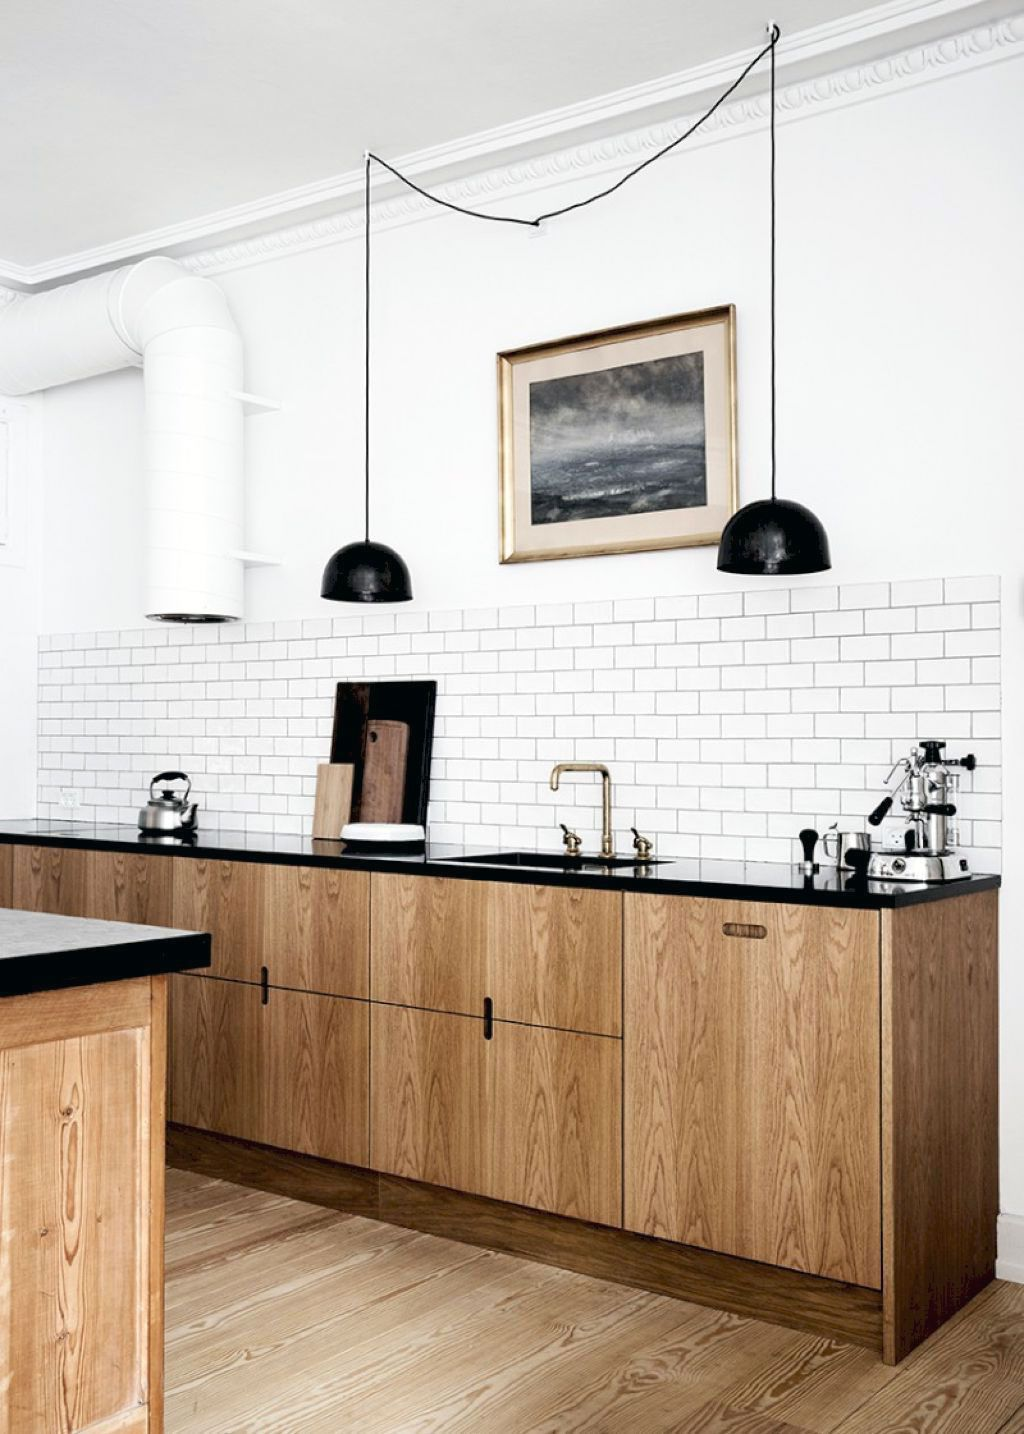 44 Clean Minimalist Sink Ideas For Your Scandinavian Kitchen In 2020 Scandinavian Kitchen Kitchen Design Trends Scandinavian Kitchen Design